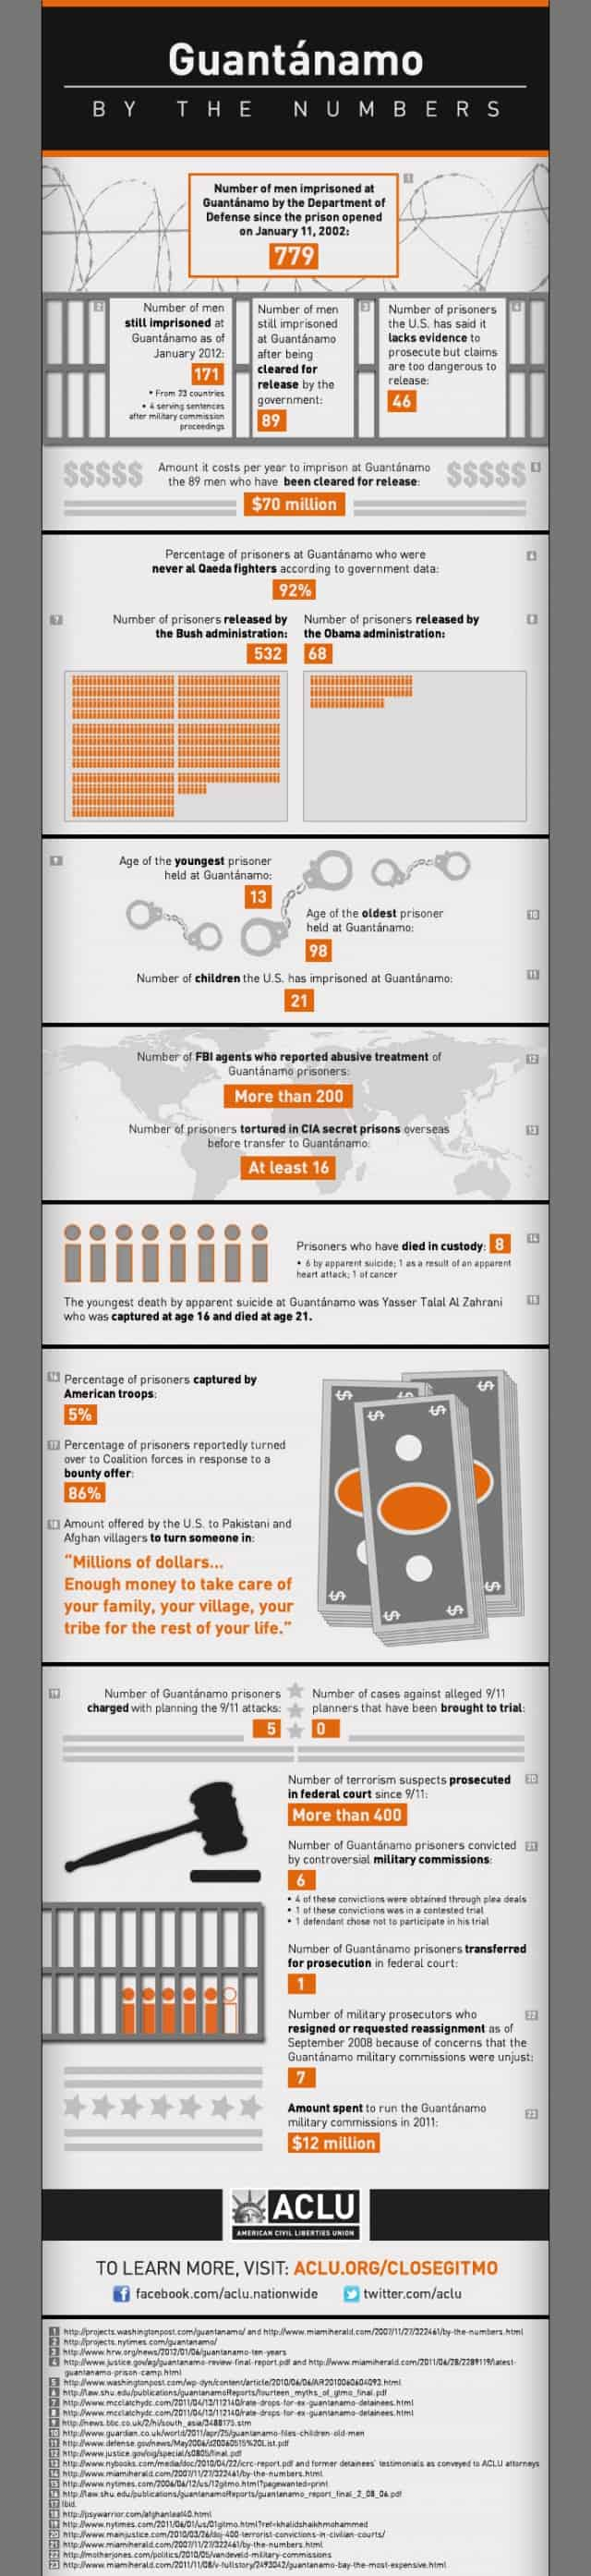 Guantanamo by the numbers infographic